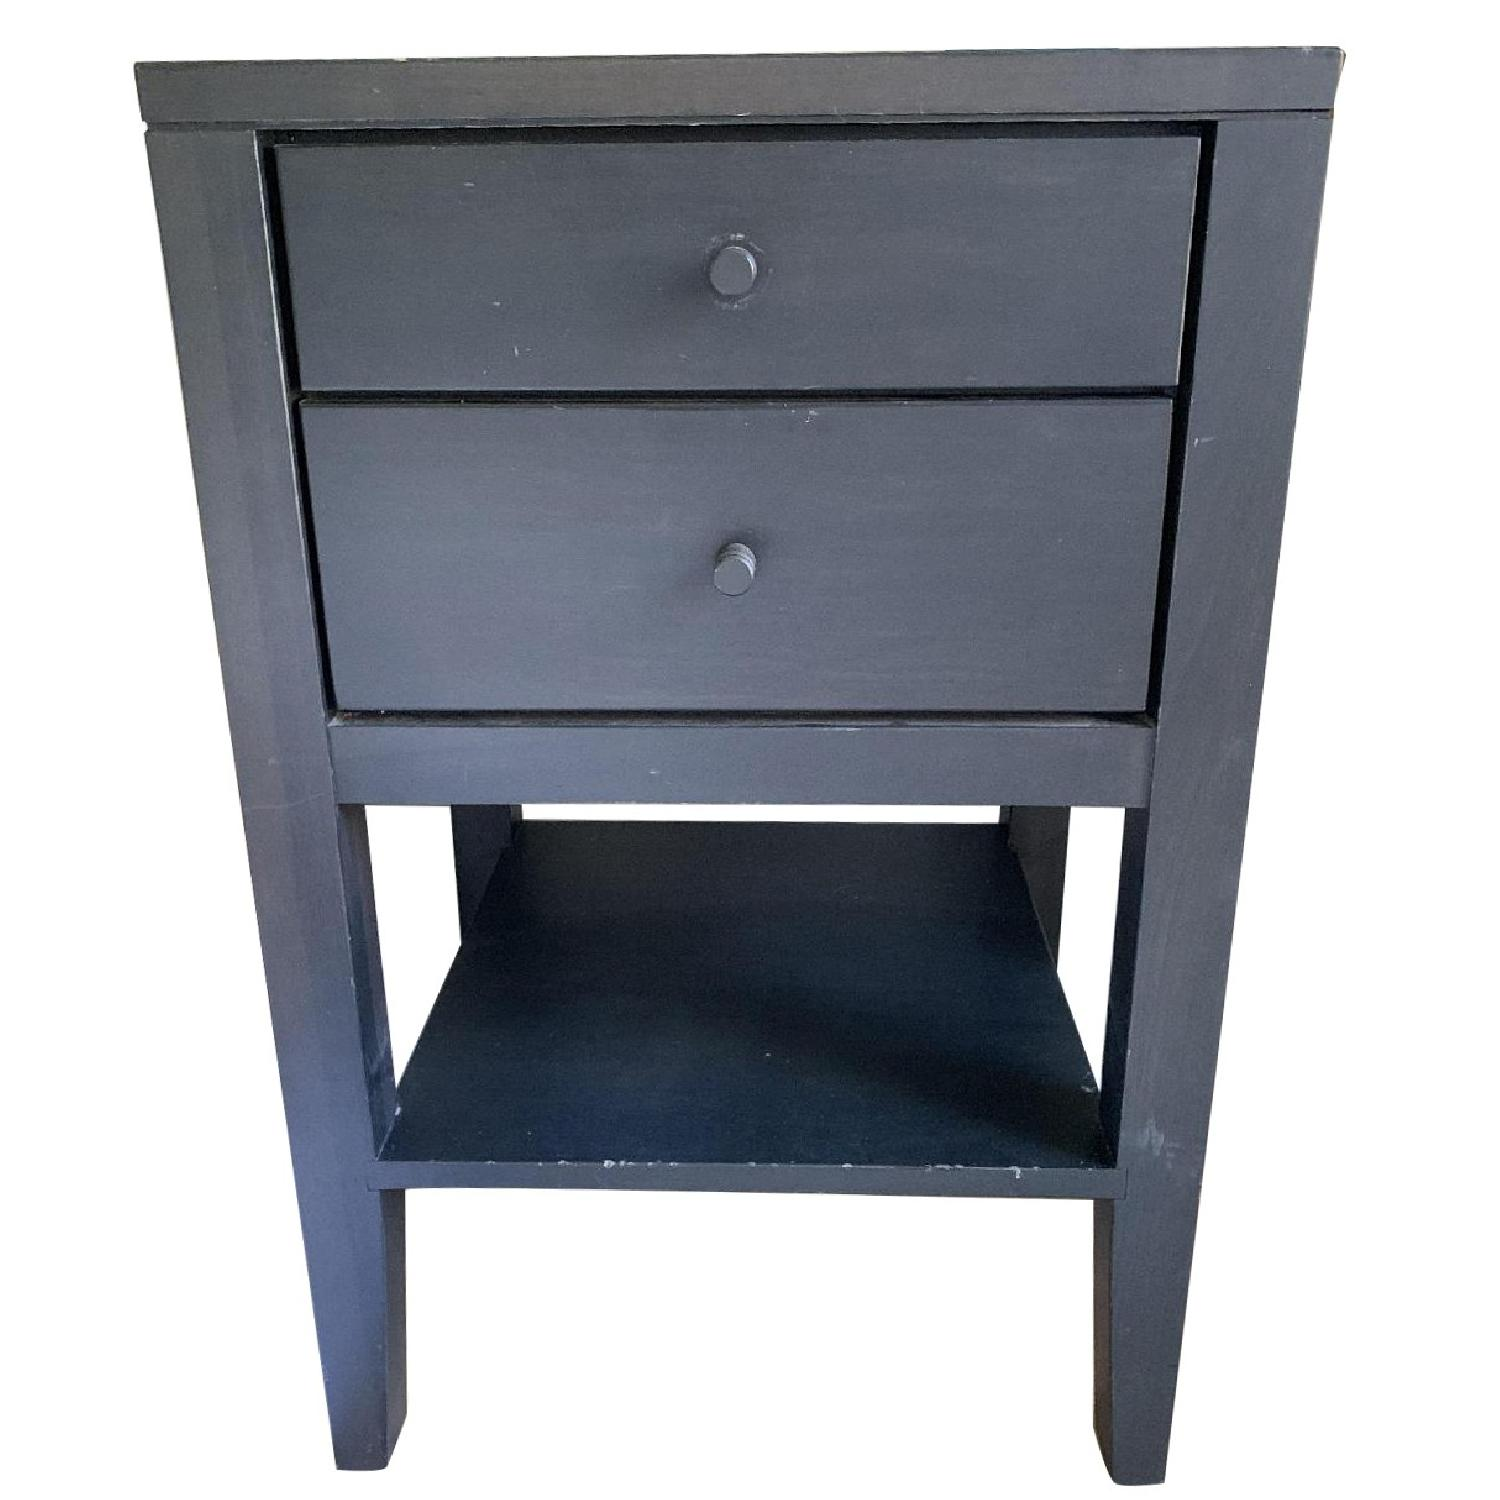 Room & Board Dark Brown/Black/ Grey Tall Nightstands